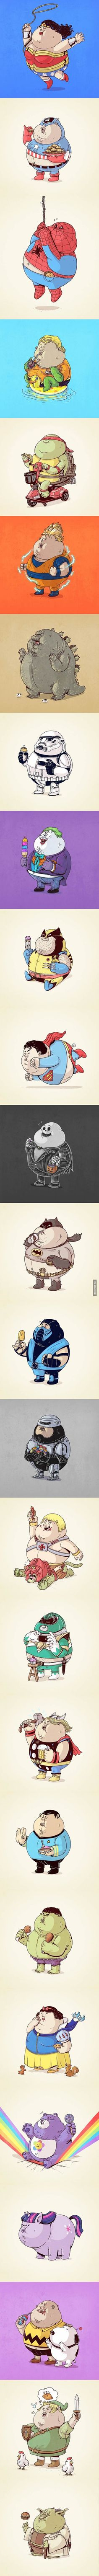 "What if Superheroes Were Fat?.. I think these are ""Super-size-heroes"""